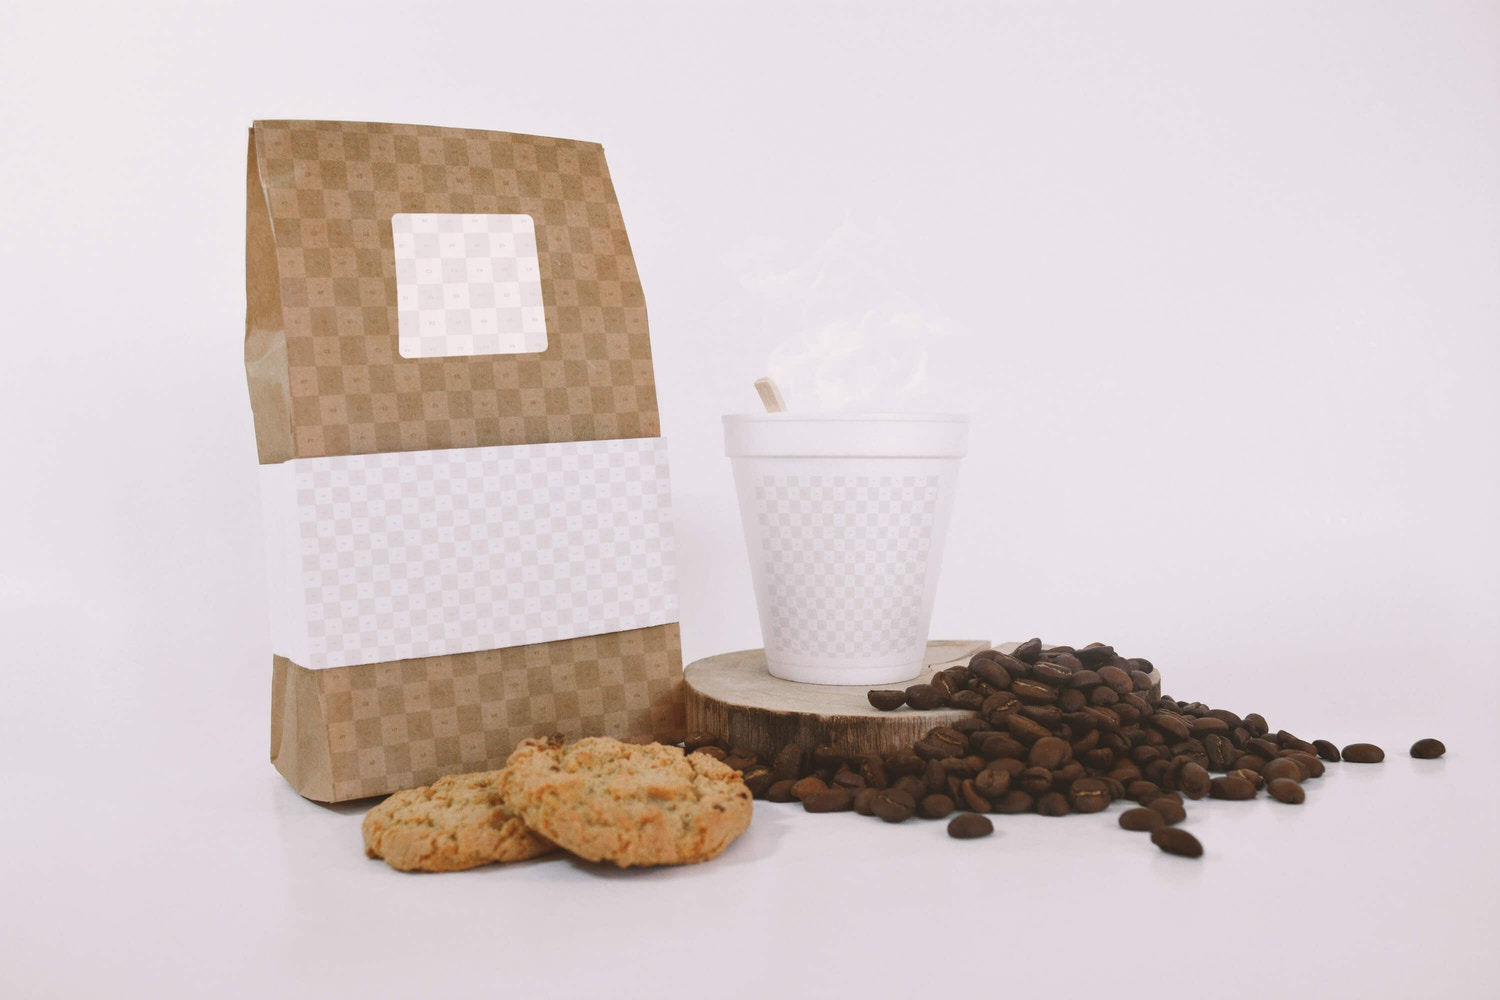 Coffee Bag and Cup Mockup With Cookies